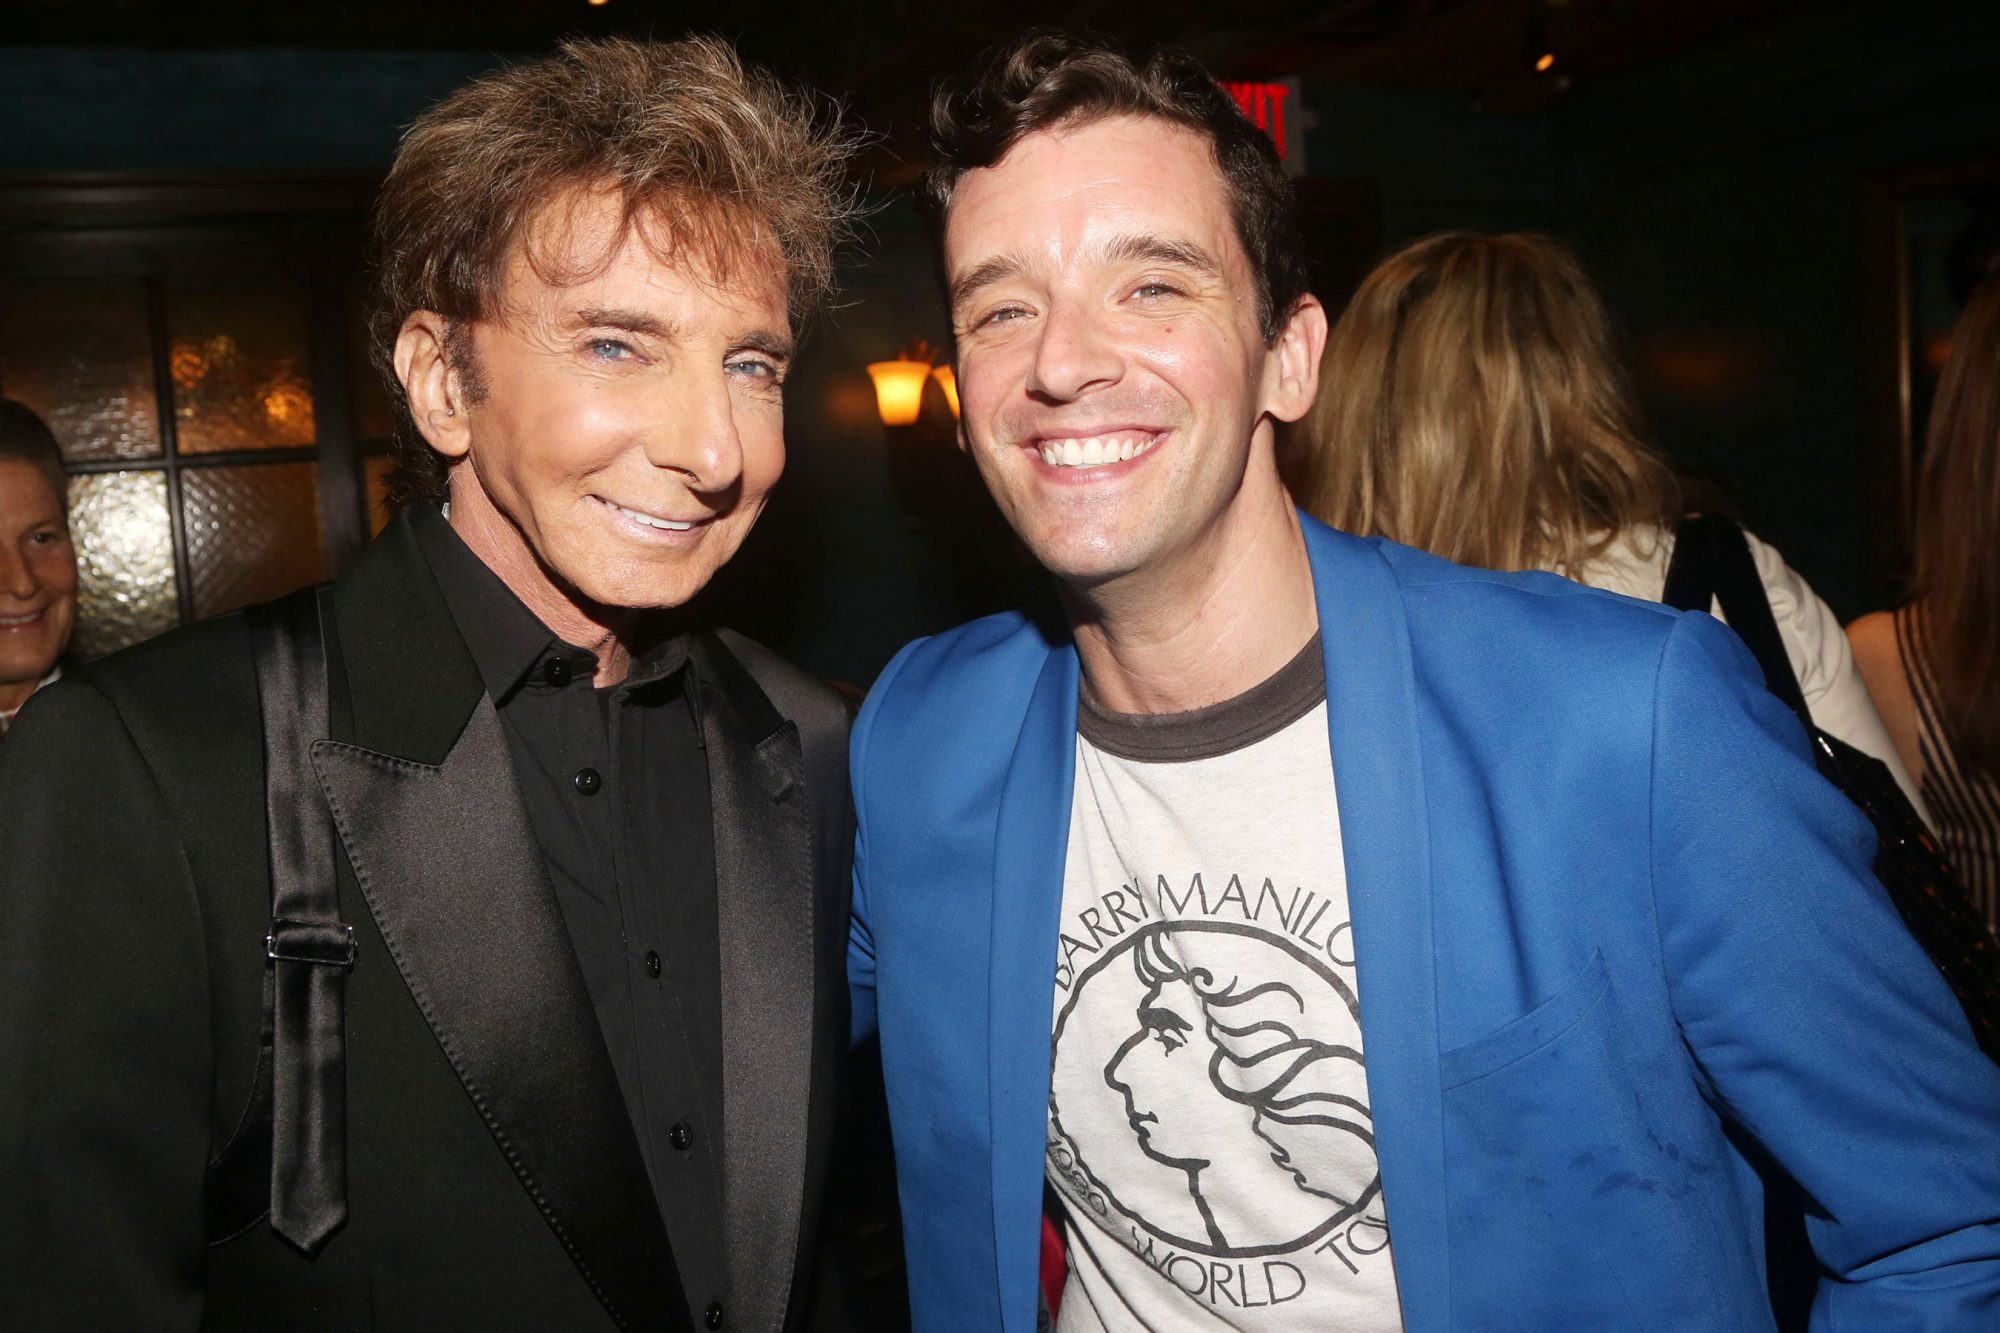 Barry Manilow and Michael Urie